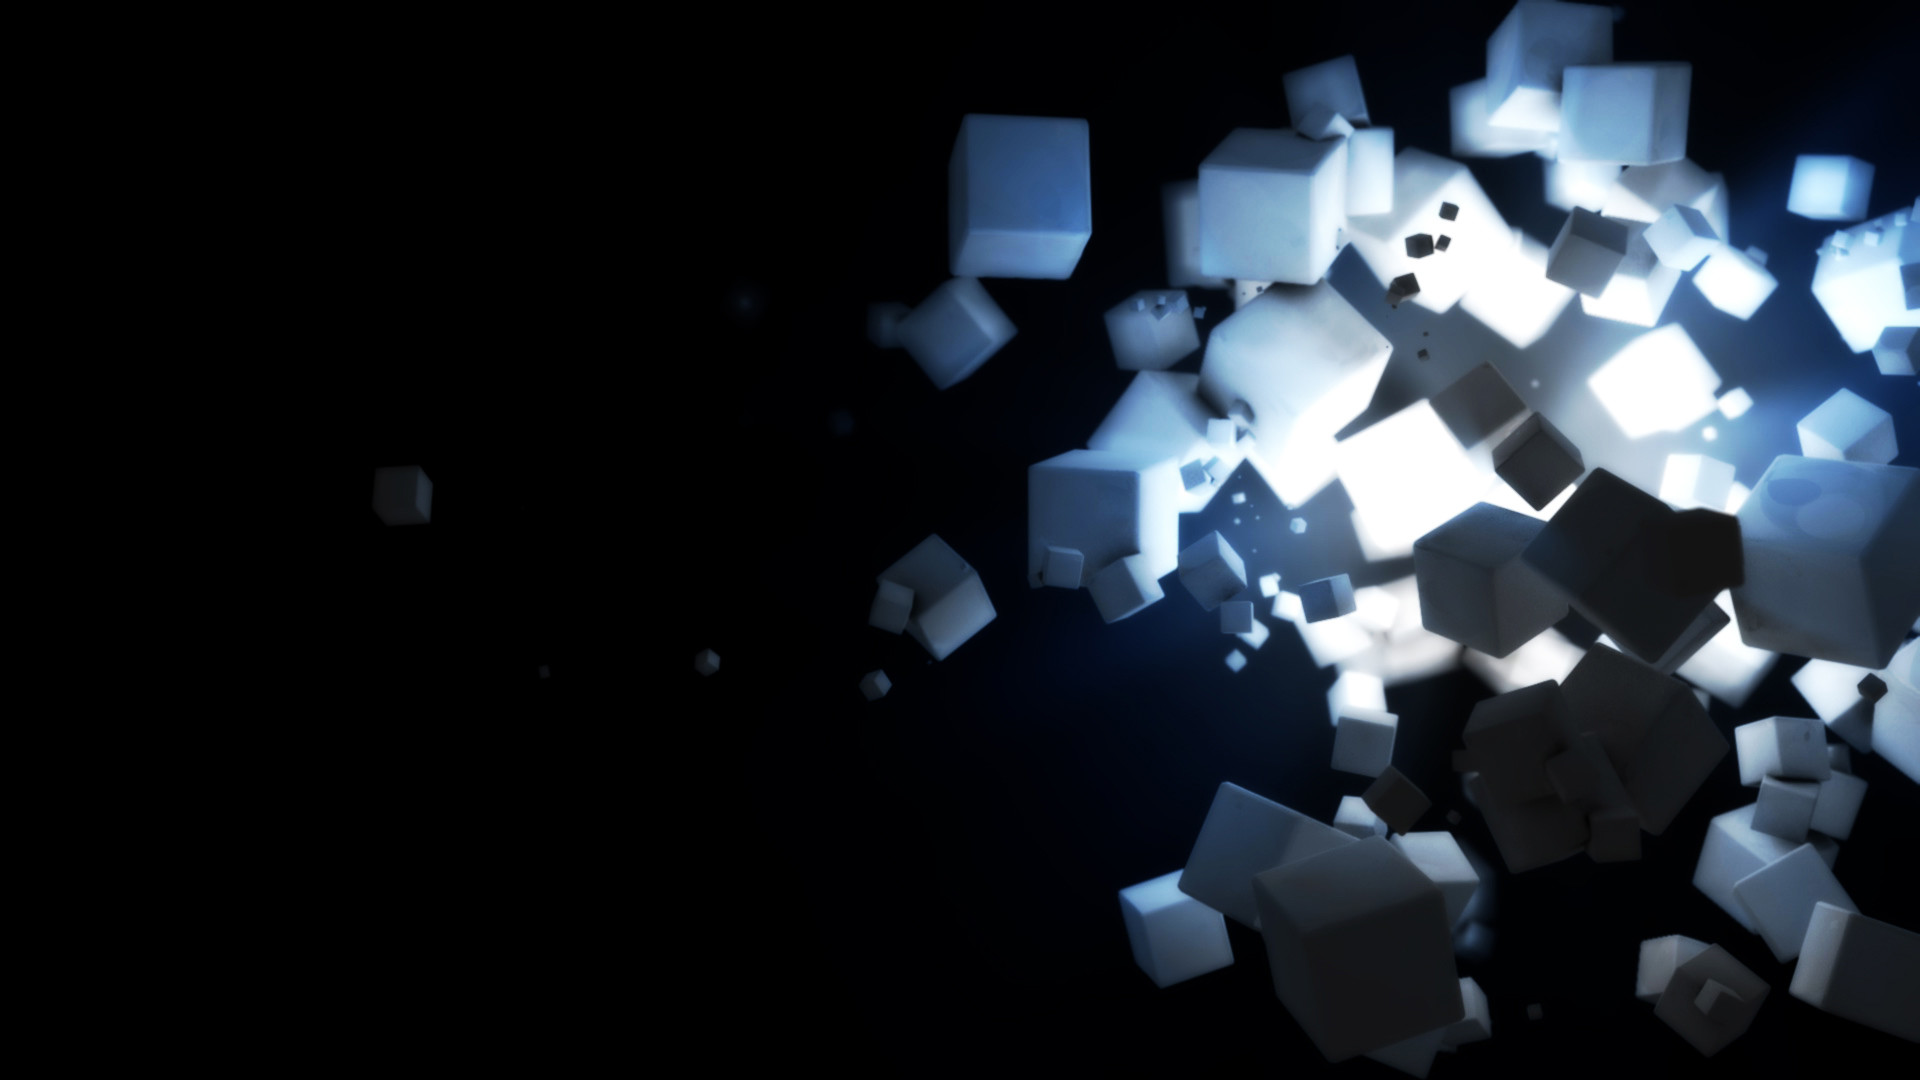 1920x1080 Dark Cubes Wallpapers | HD Wallpapers